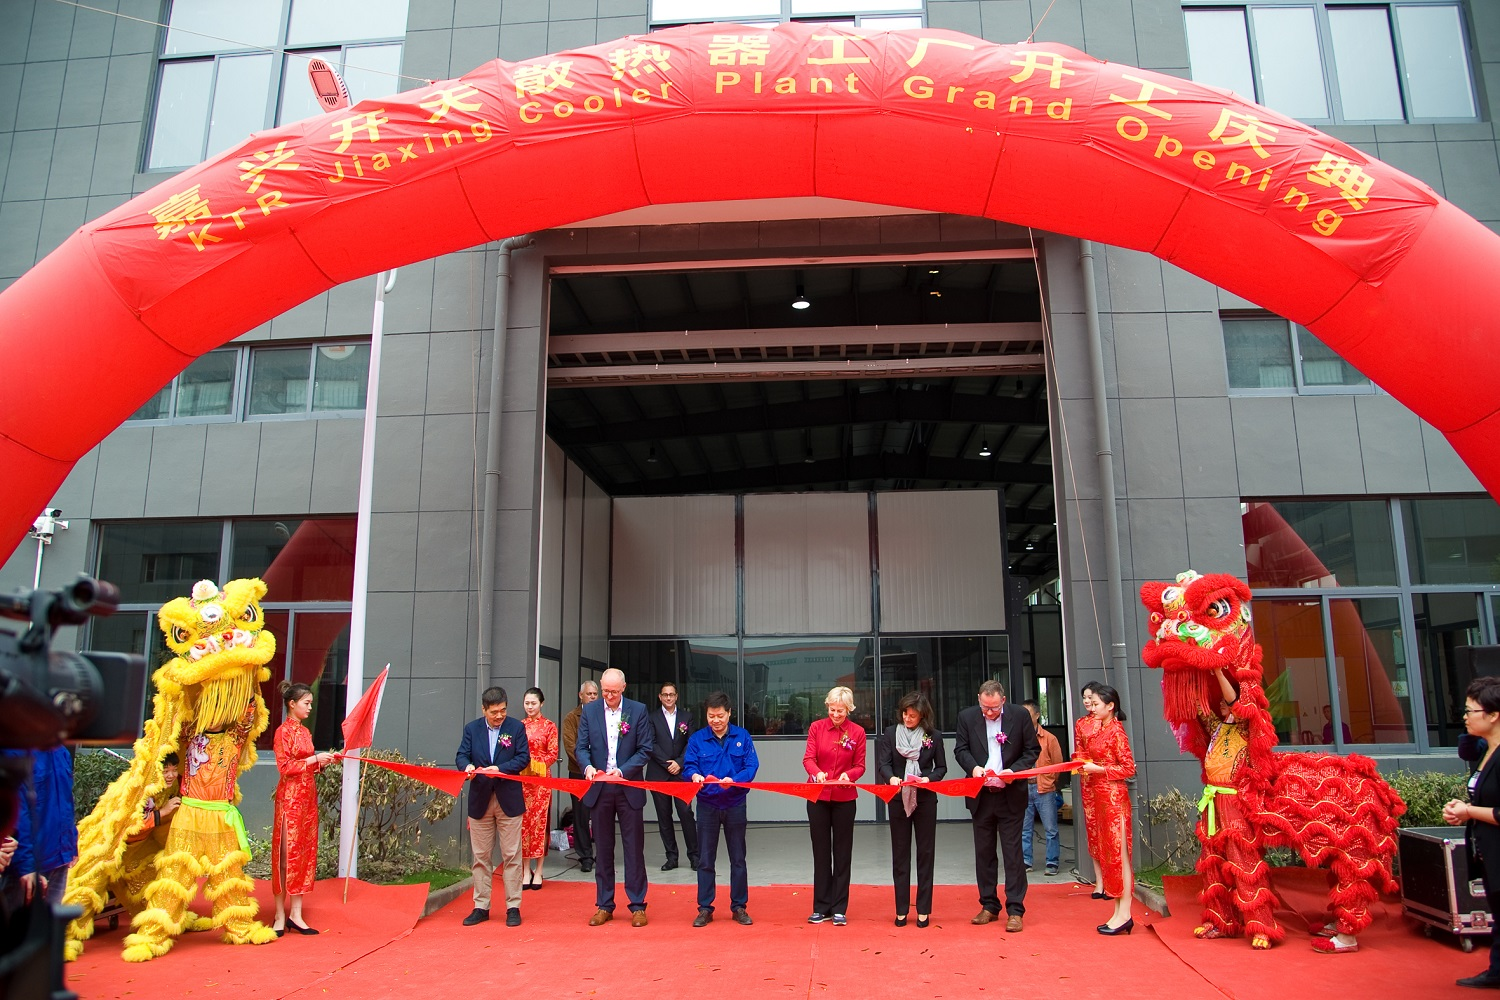 Ktr Open New Cooler Production Plant In China Mepca